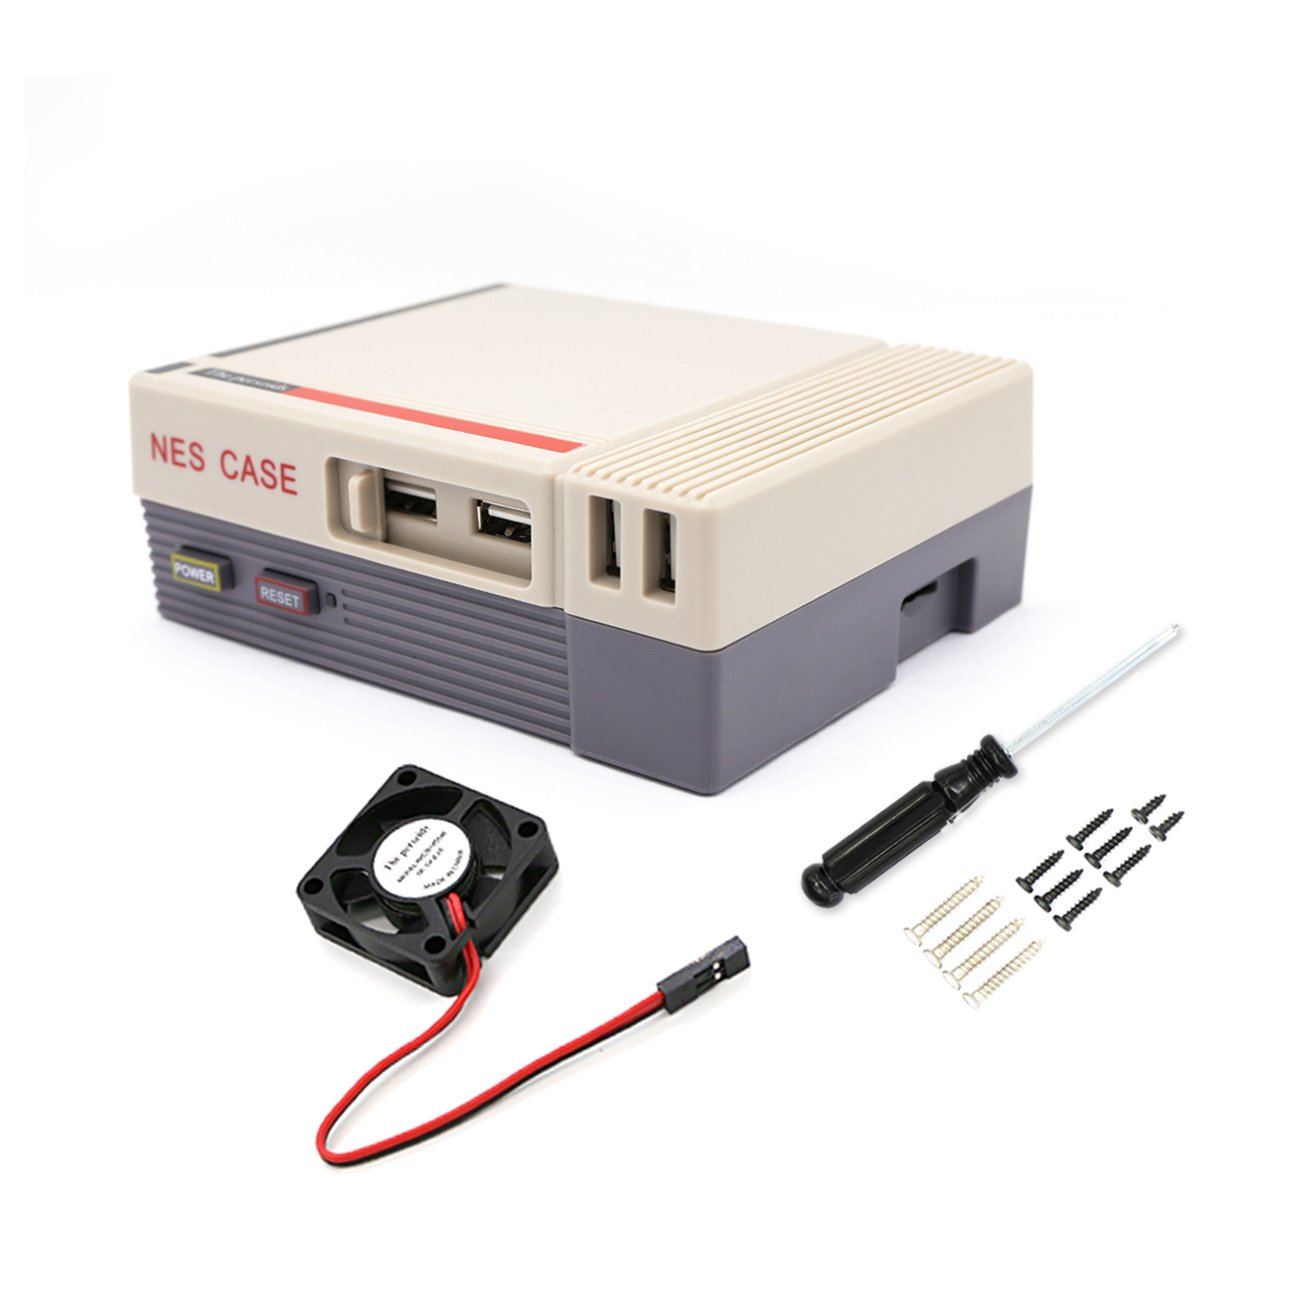 YIKESHU NES CASE with Brushless Cooling Fan Functional Power Reset Button Retroflag NESPI CASE Rasberry Pi 3, 2 B+ (Grey case)